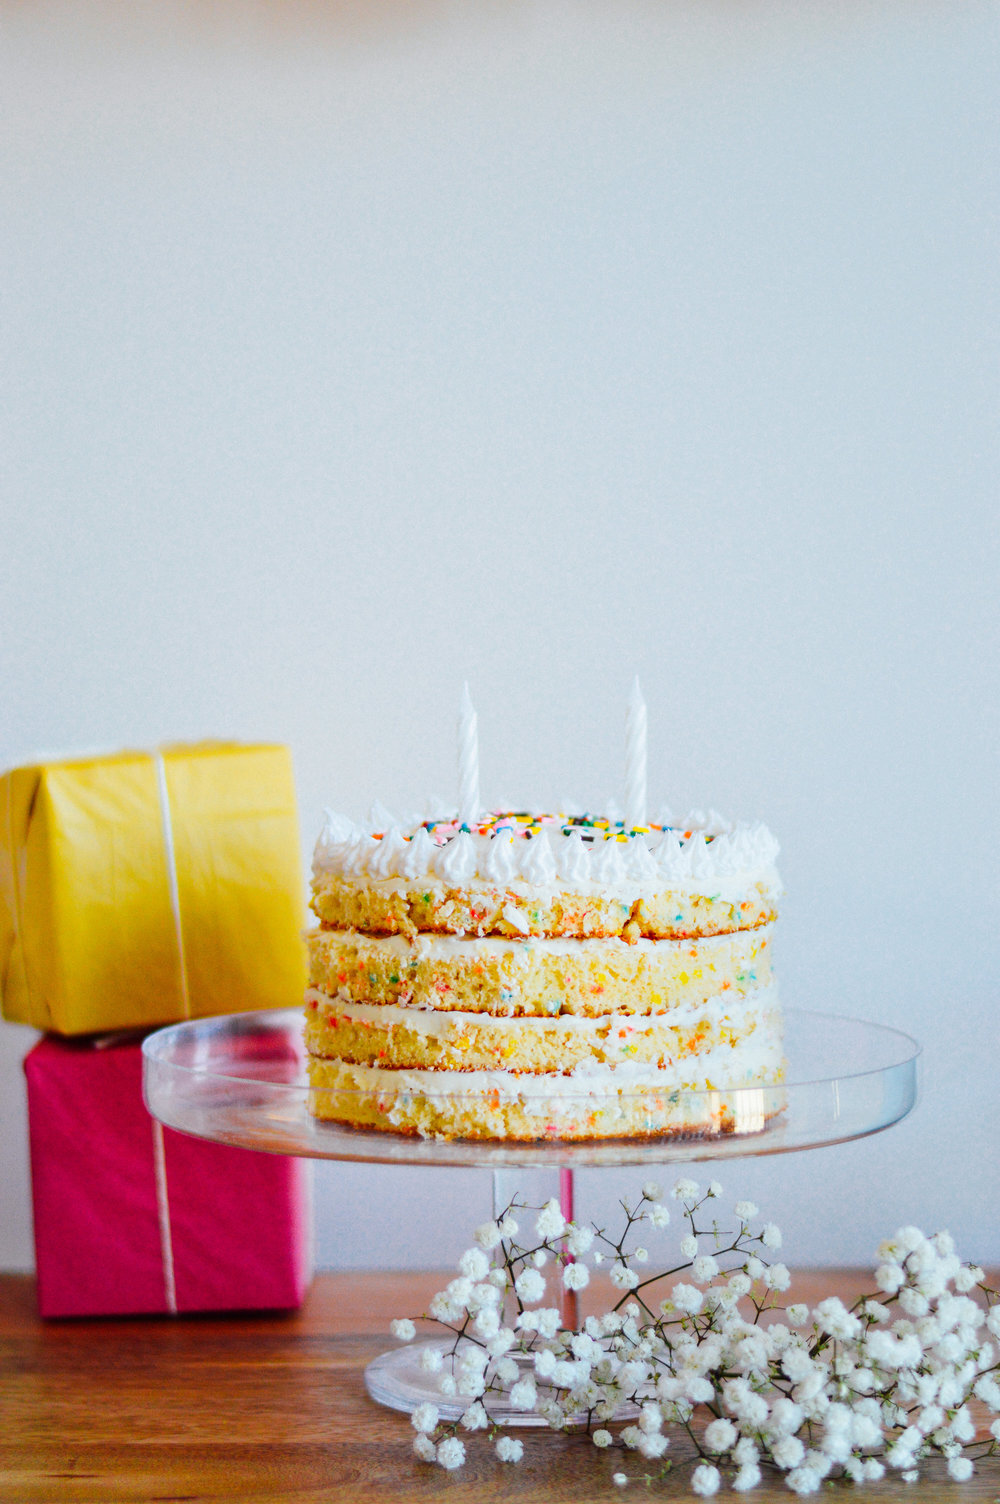 Any Excuse to Party: Classic Birthday Cake